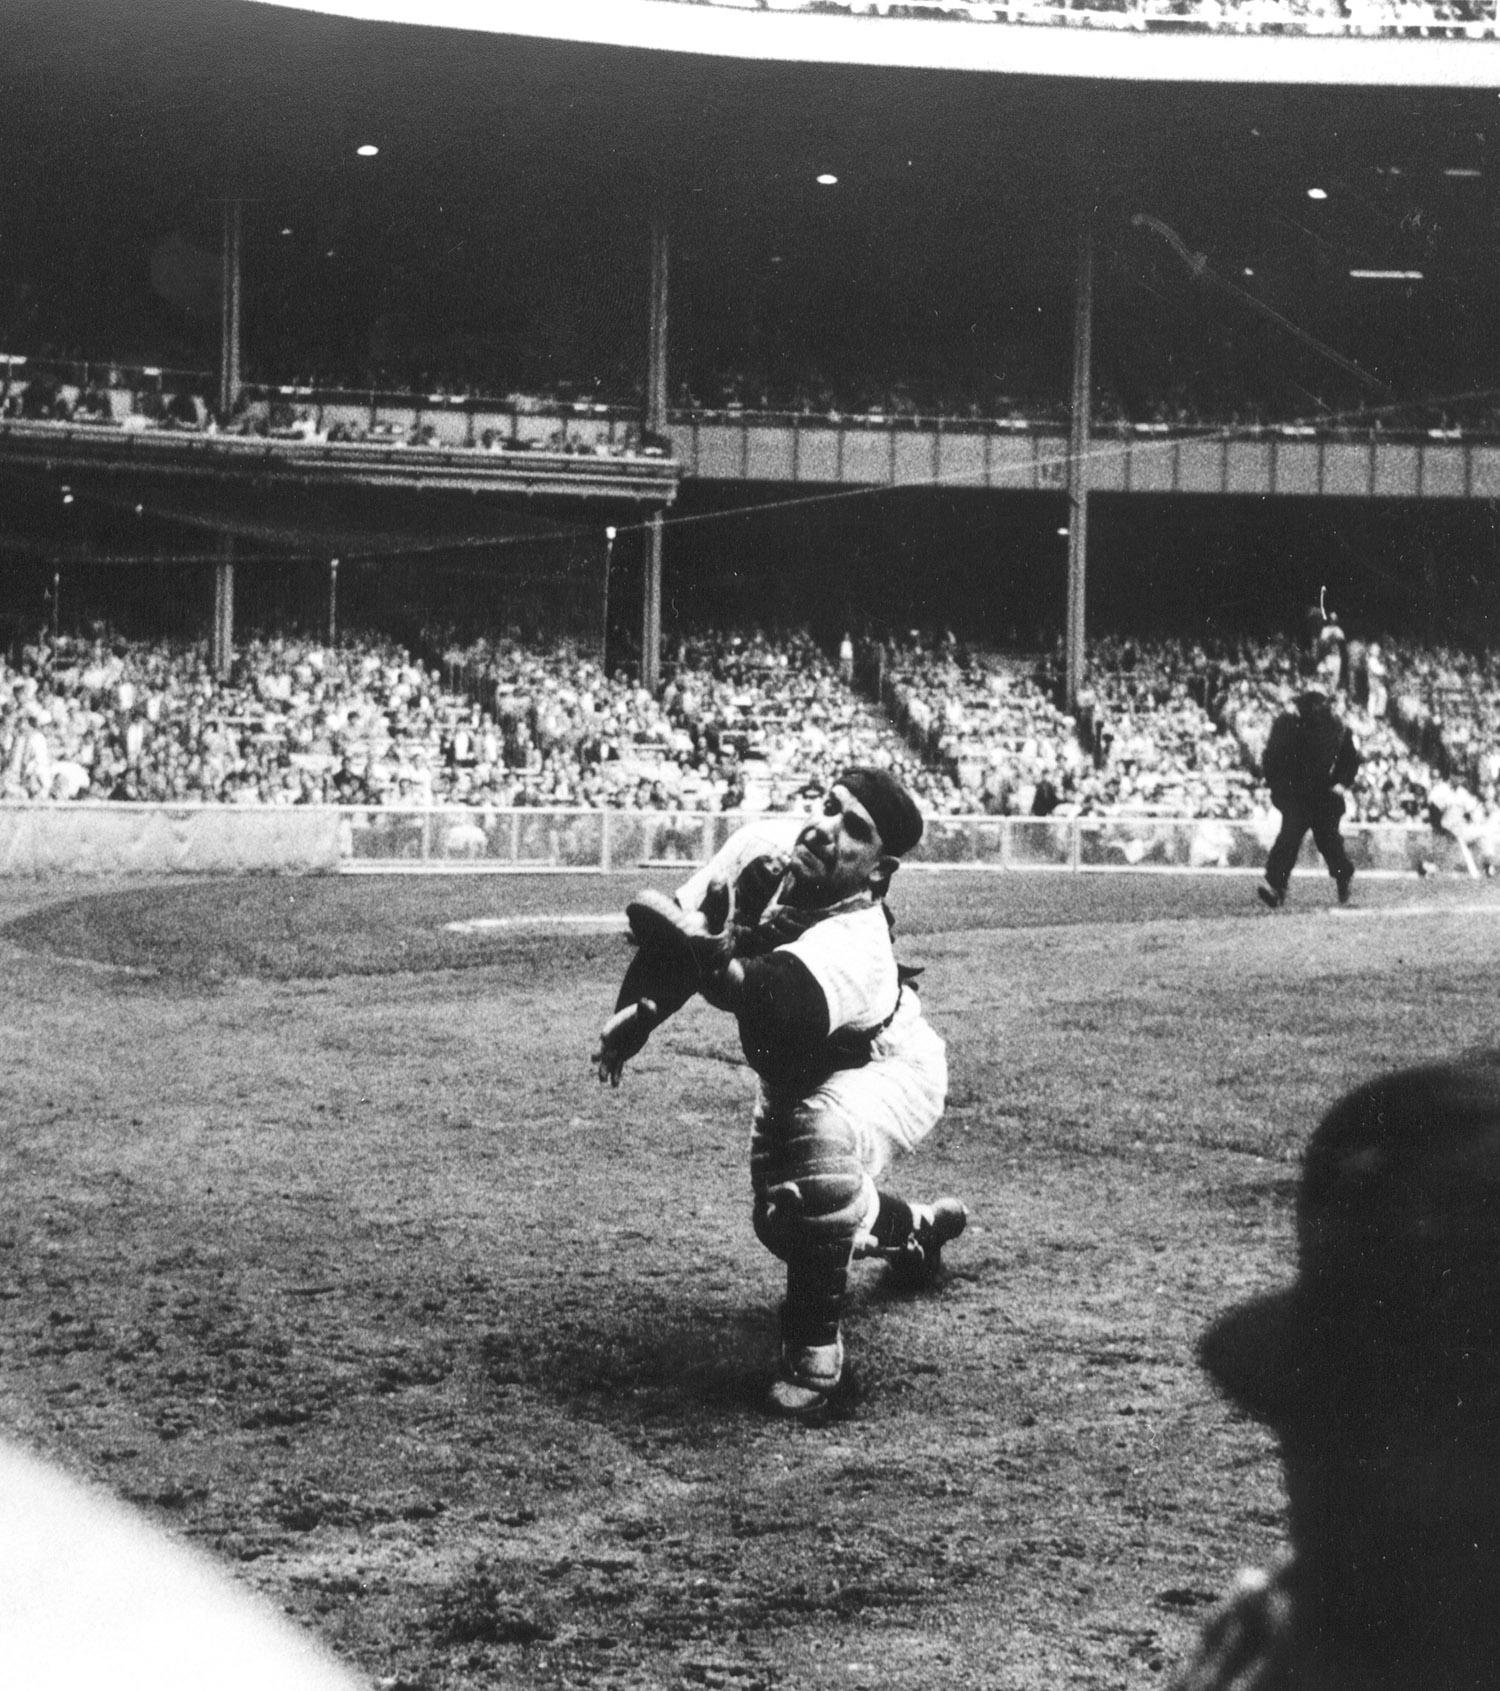 This image of Yogi Berra chasing down a foul ball is one of thousands that need to be preserved. (Arthur Rickerby / National Baseball Hall of Fame and Museum)